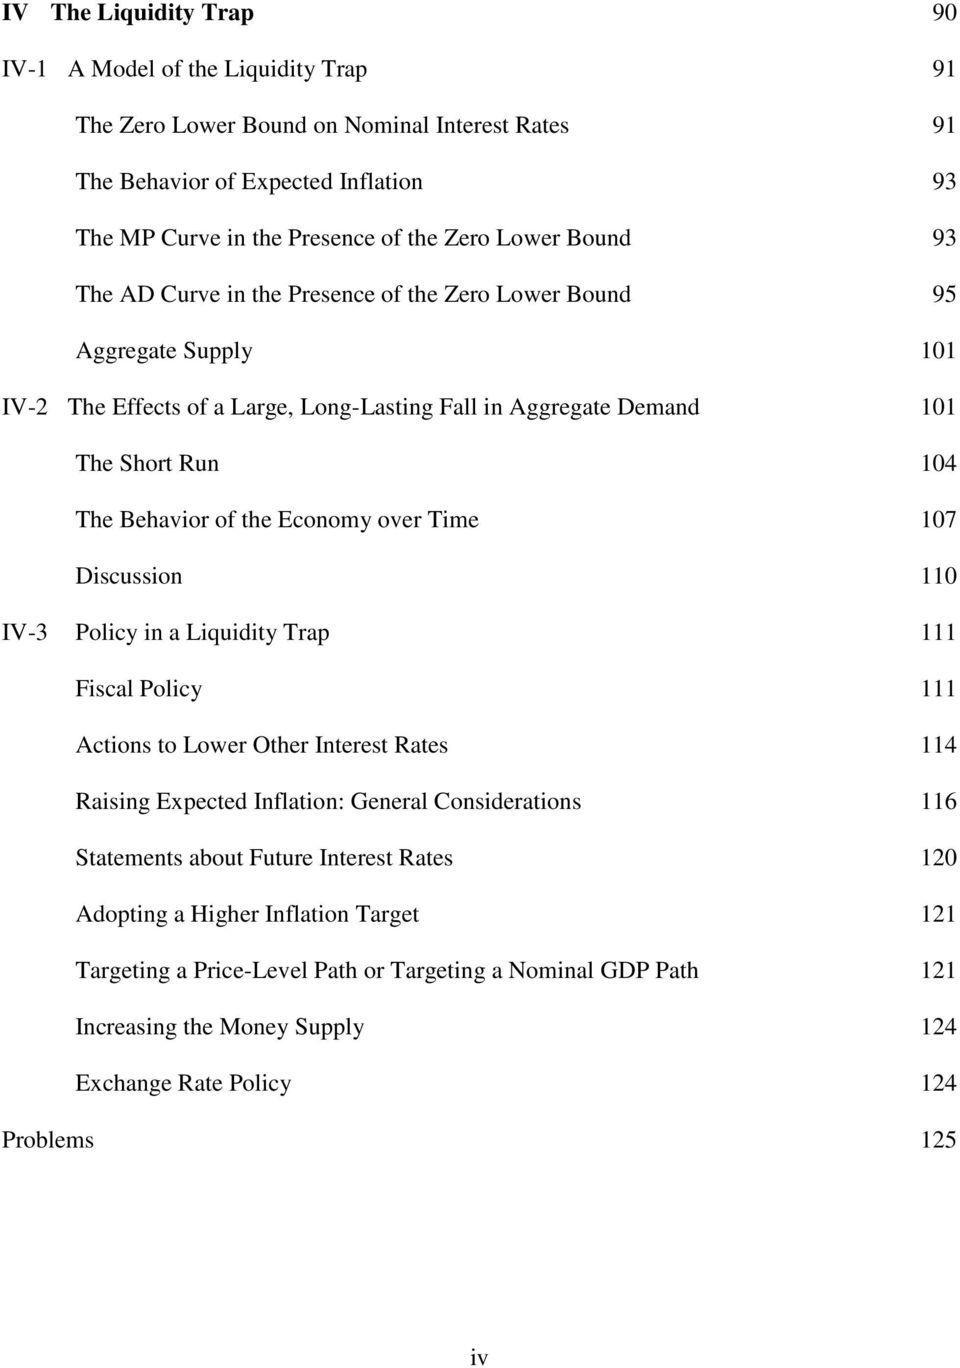 Economy over Time 107 Discussion 110 IV-3 Policy in a Liquidity Trap 111 Fiscal Policy 111 Actions to Lower Other Interest Rates 114 Raising Expected Inflation: General Considerations 116 Statements